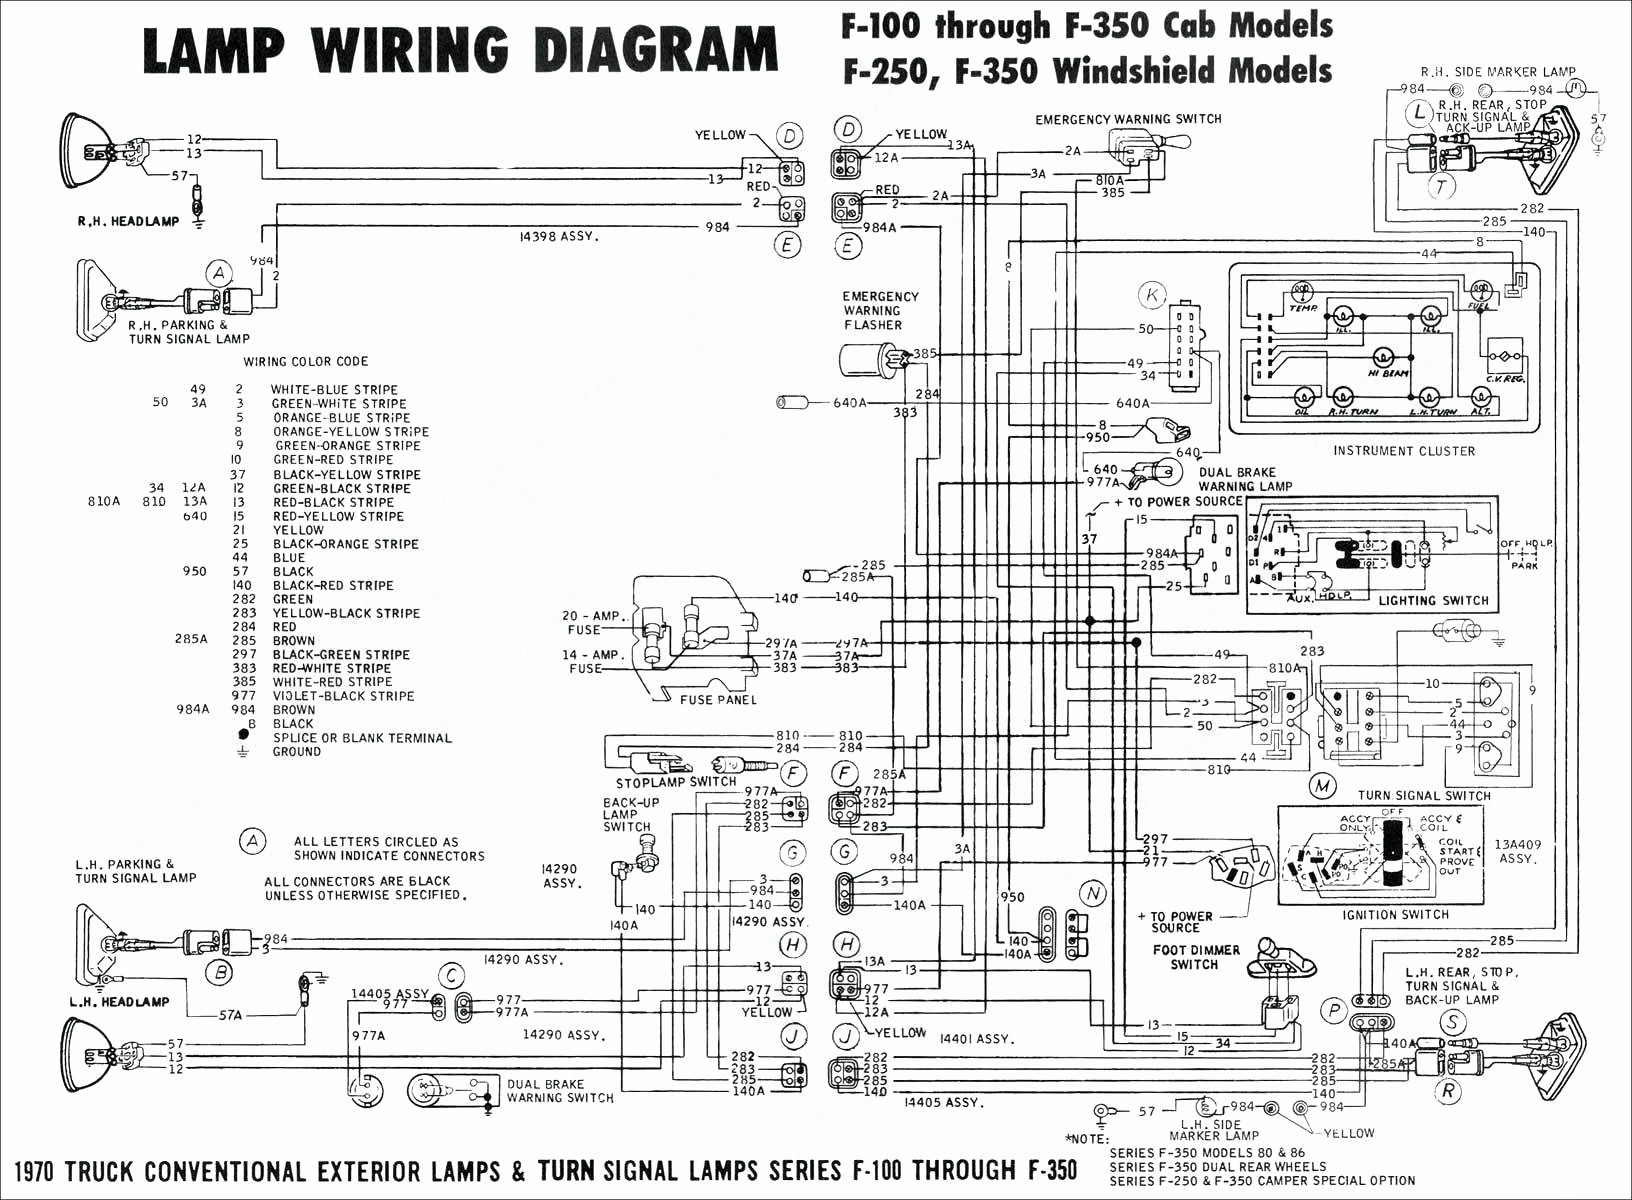 2004 Chevy Silverado Tail Light Wiring Diagram